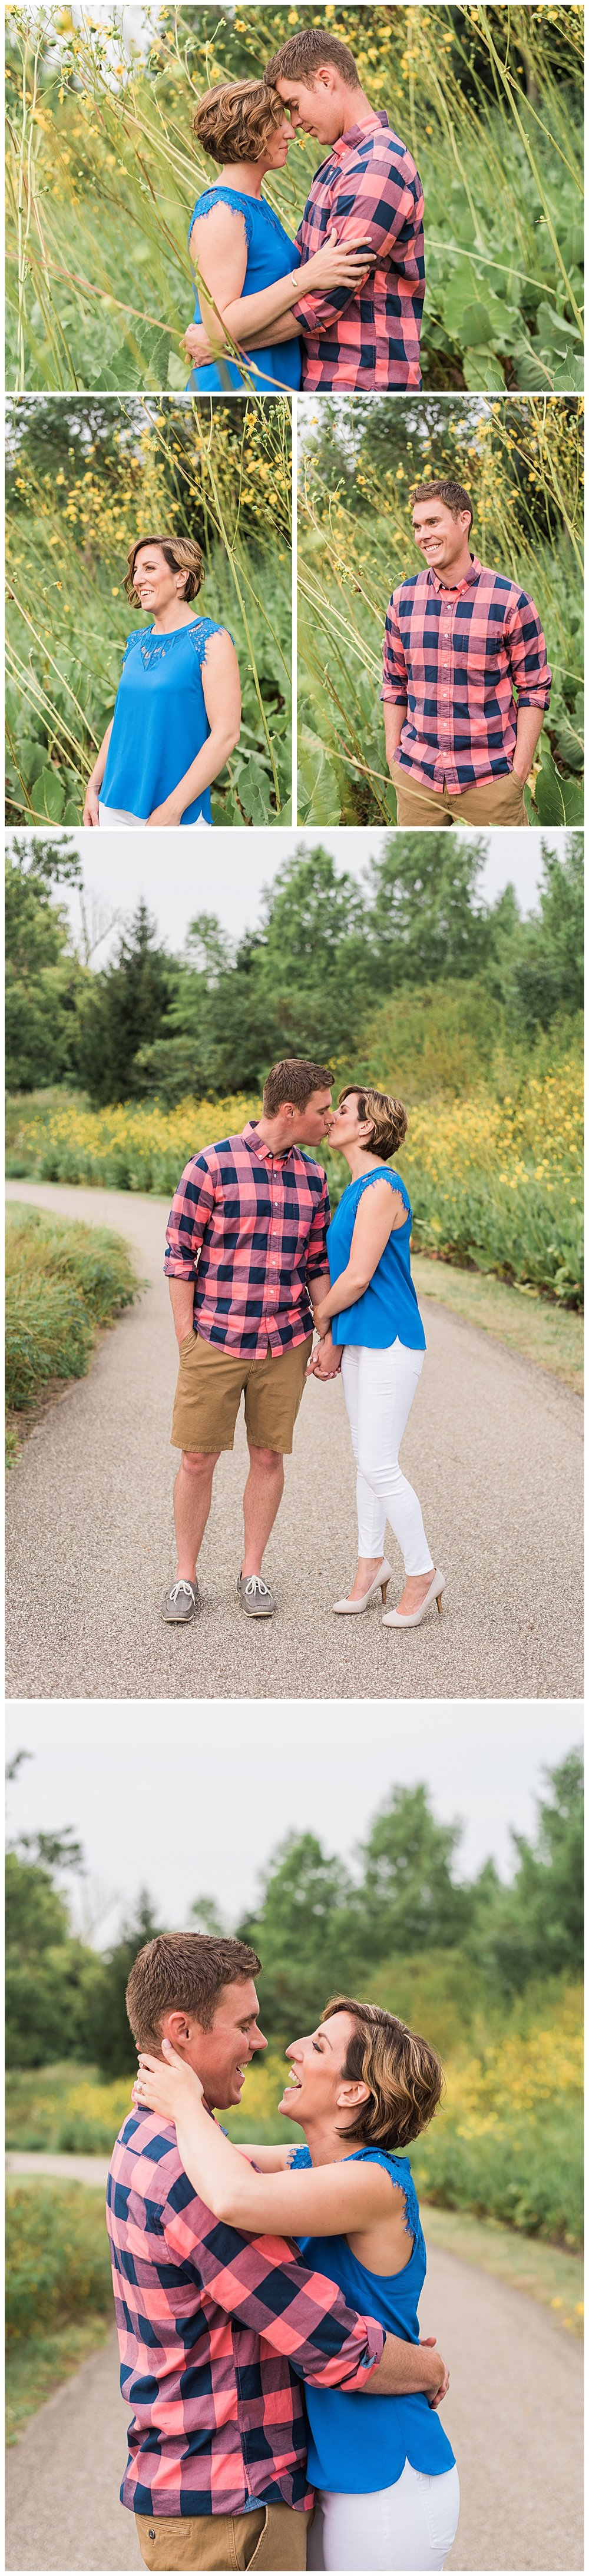 jamie and dave's engagement glenwood gardens cincinnati ohio 2